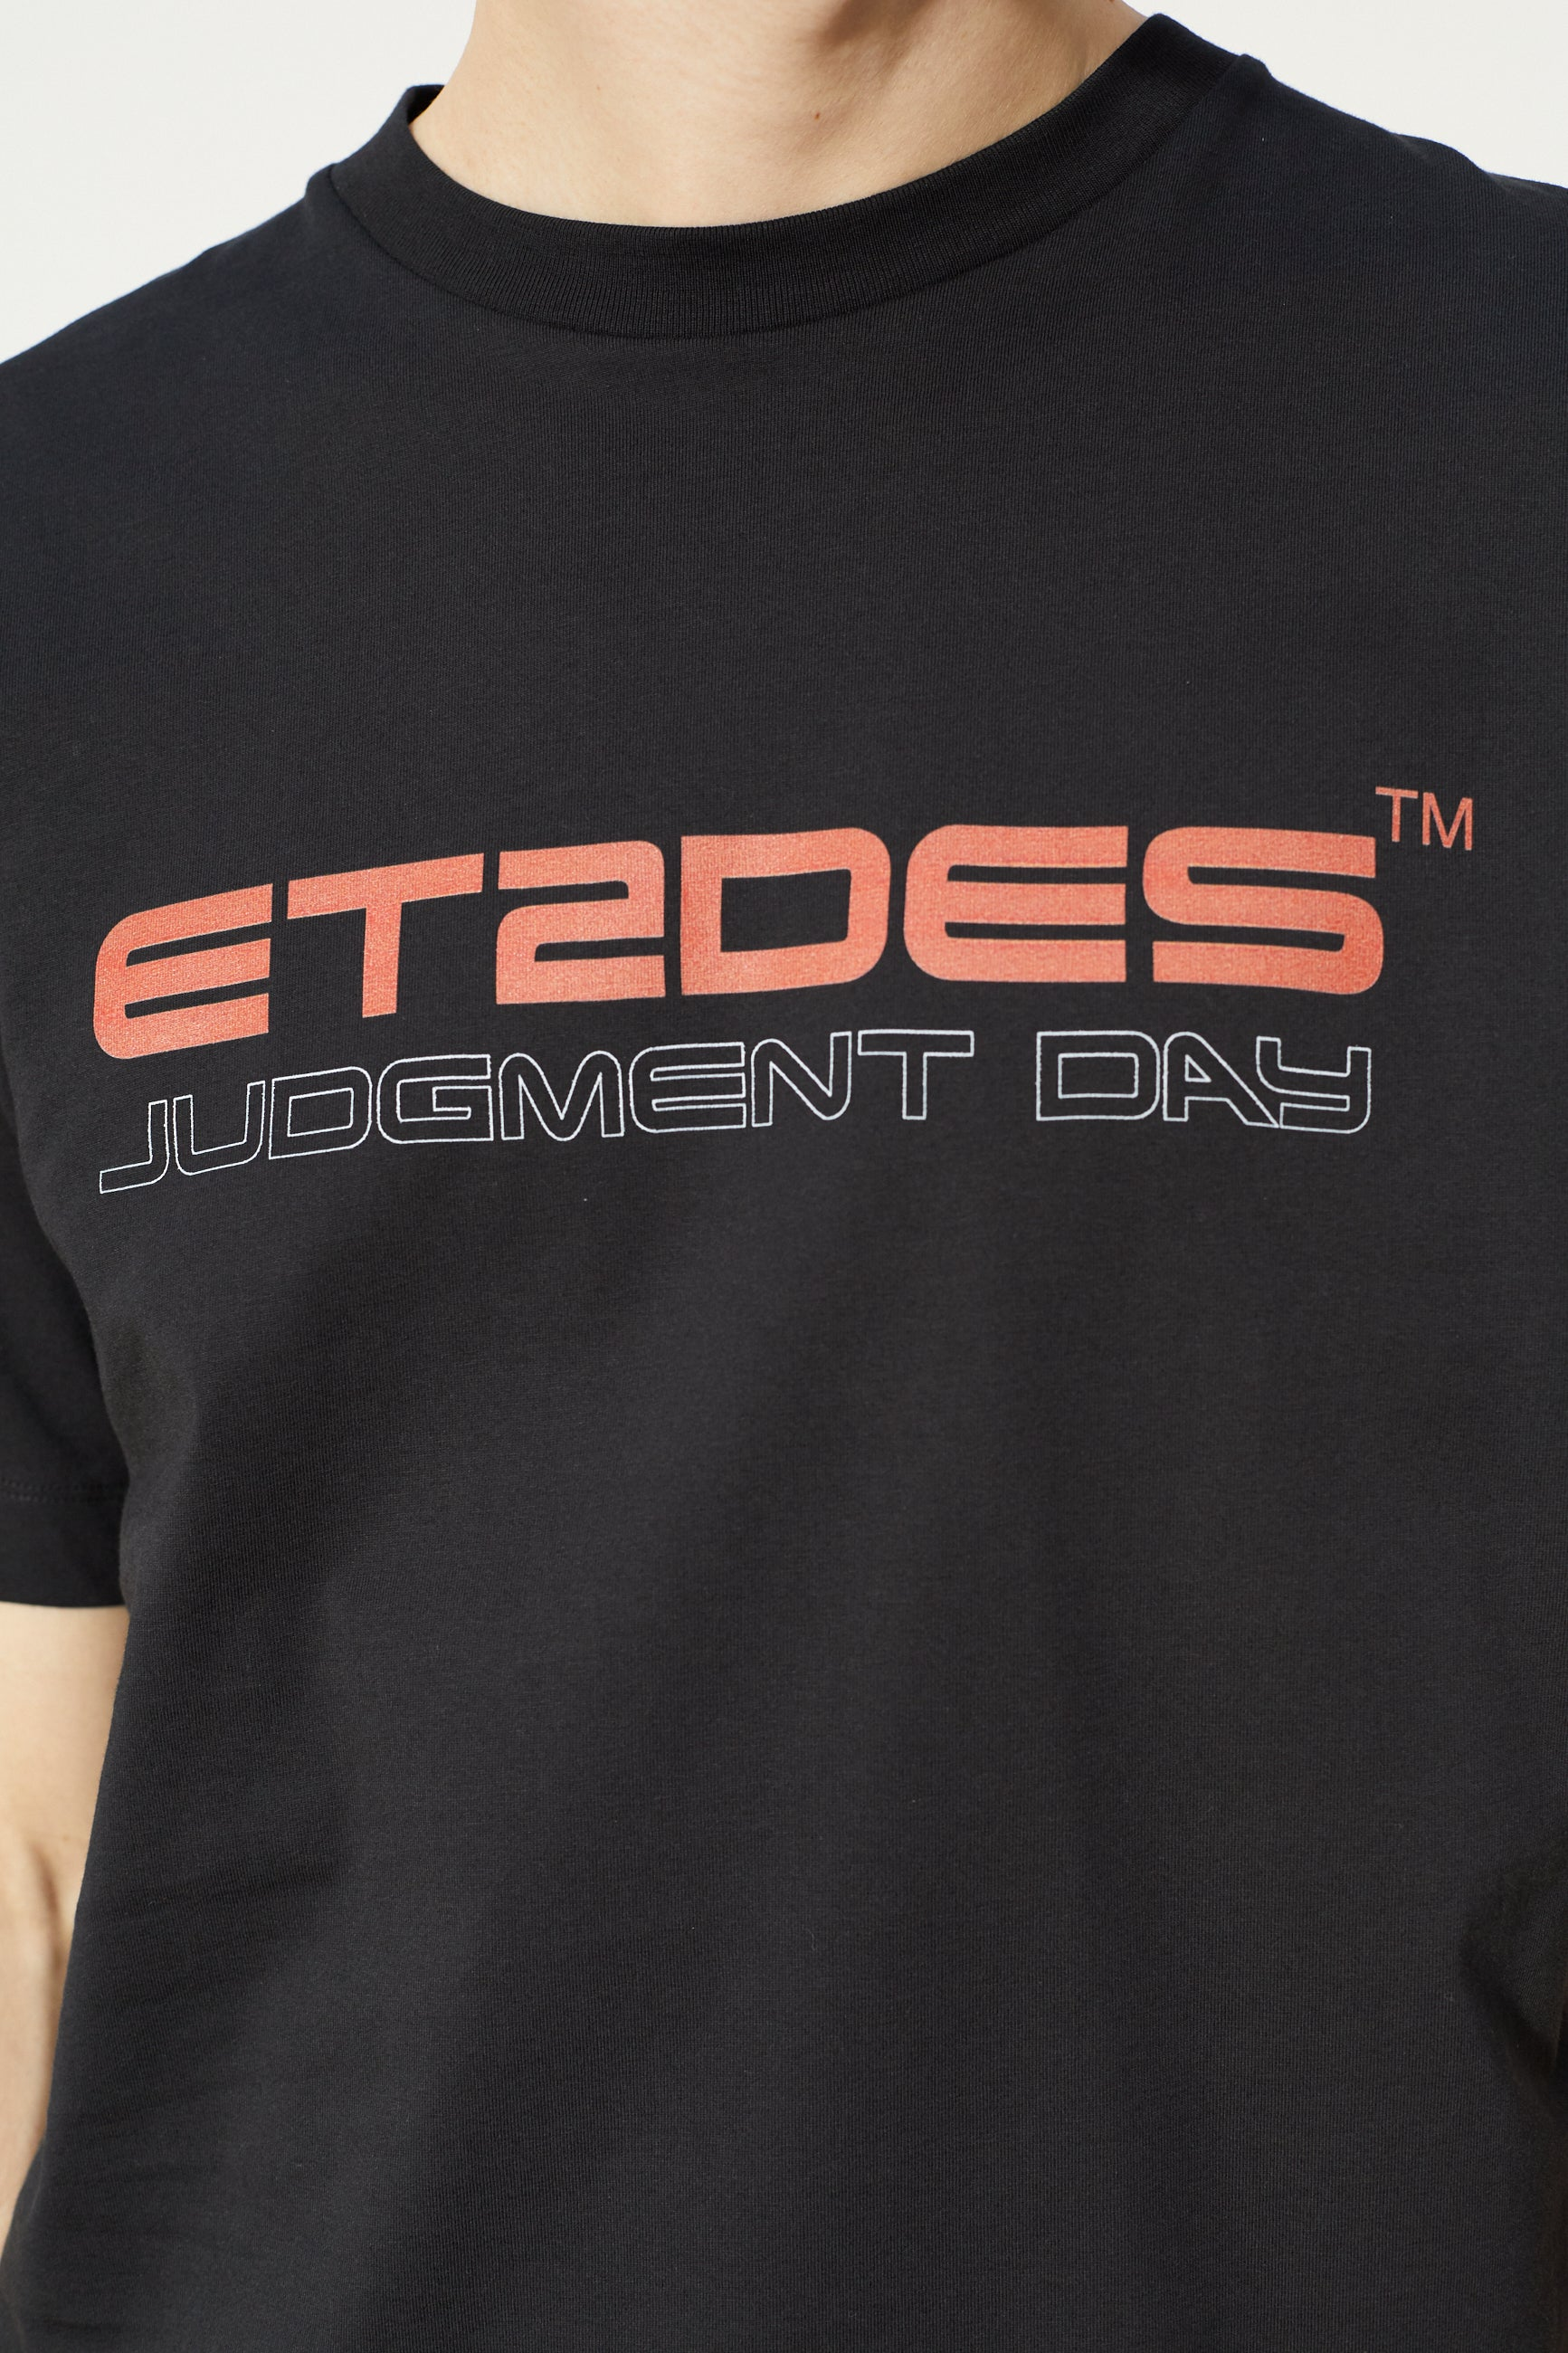 Études Wonder T2 T-shirt 4